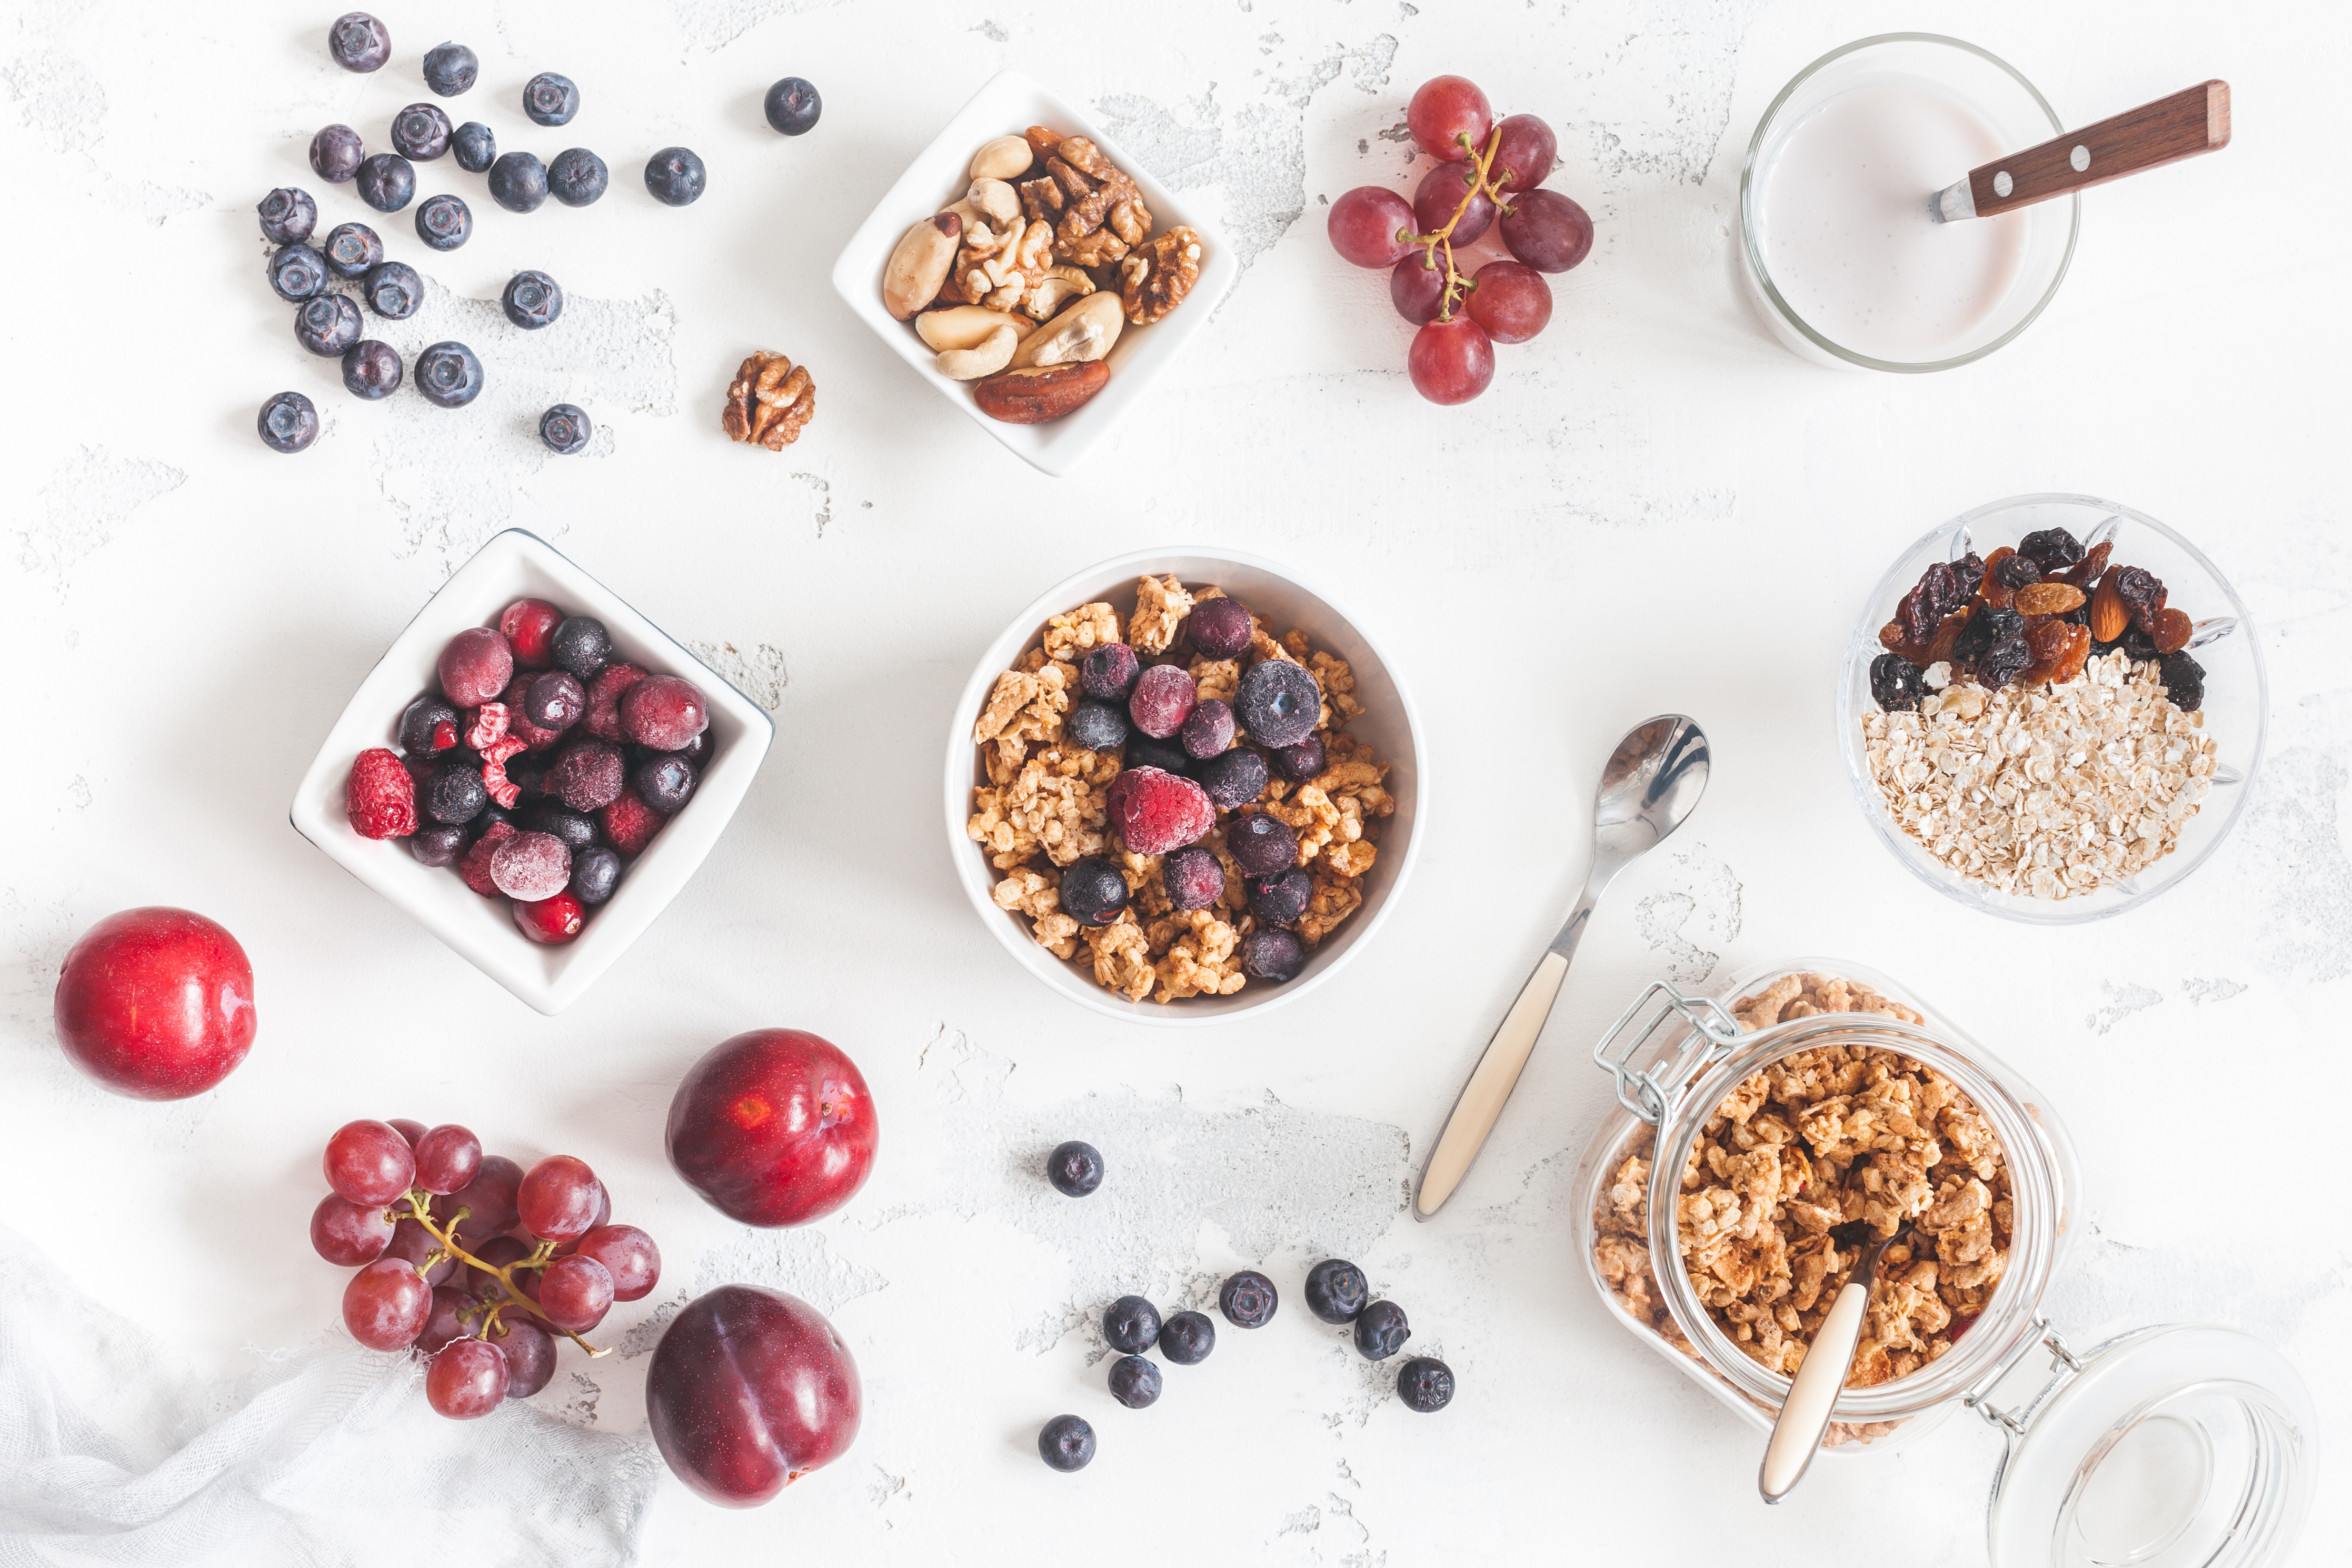 The Health Benefits of Grapes & Blueberries | Healthy Eating